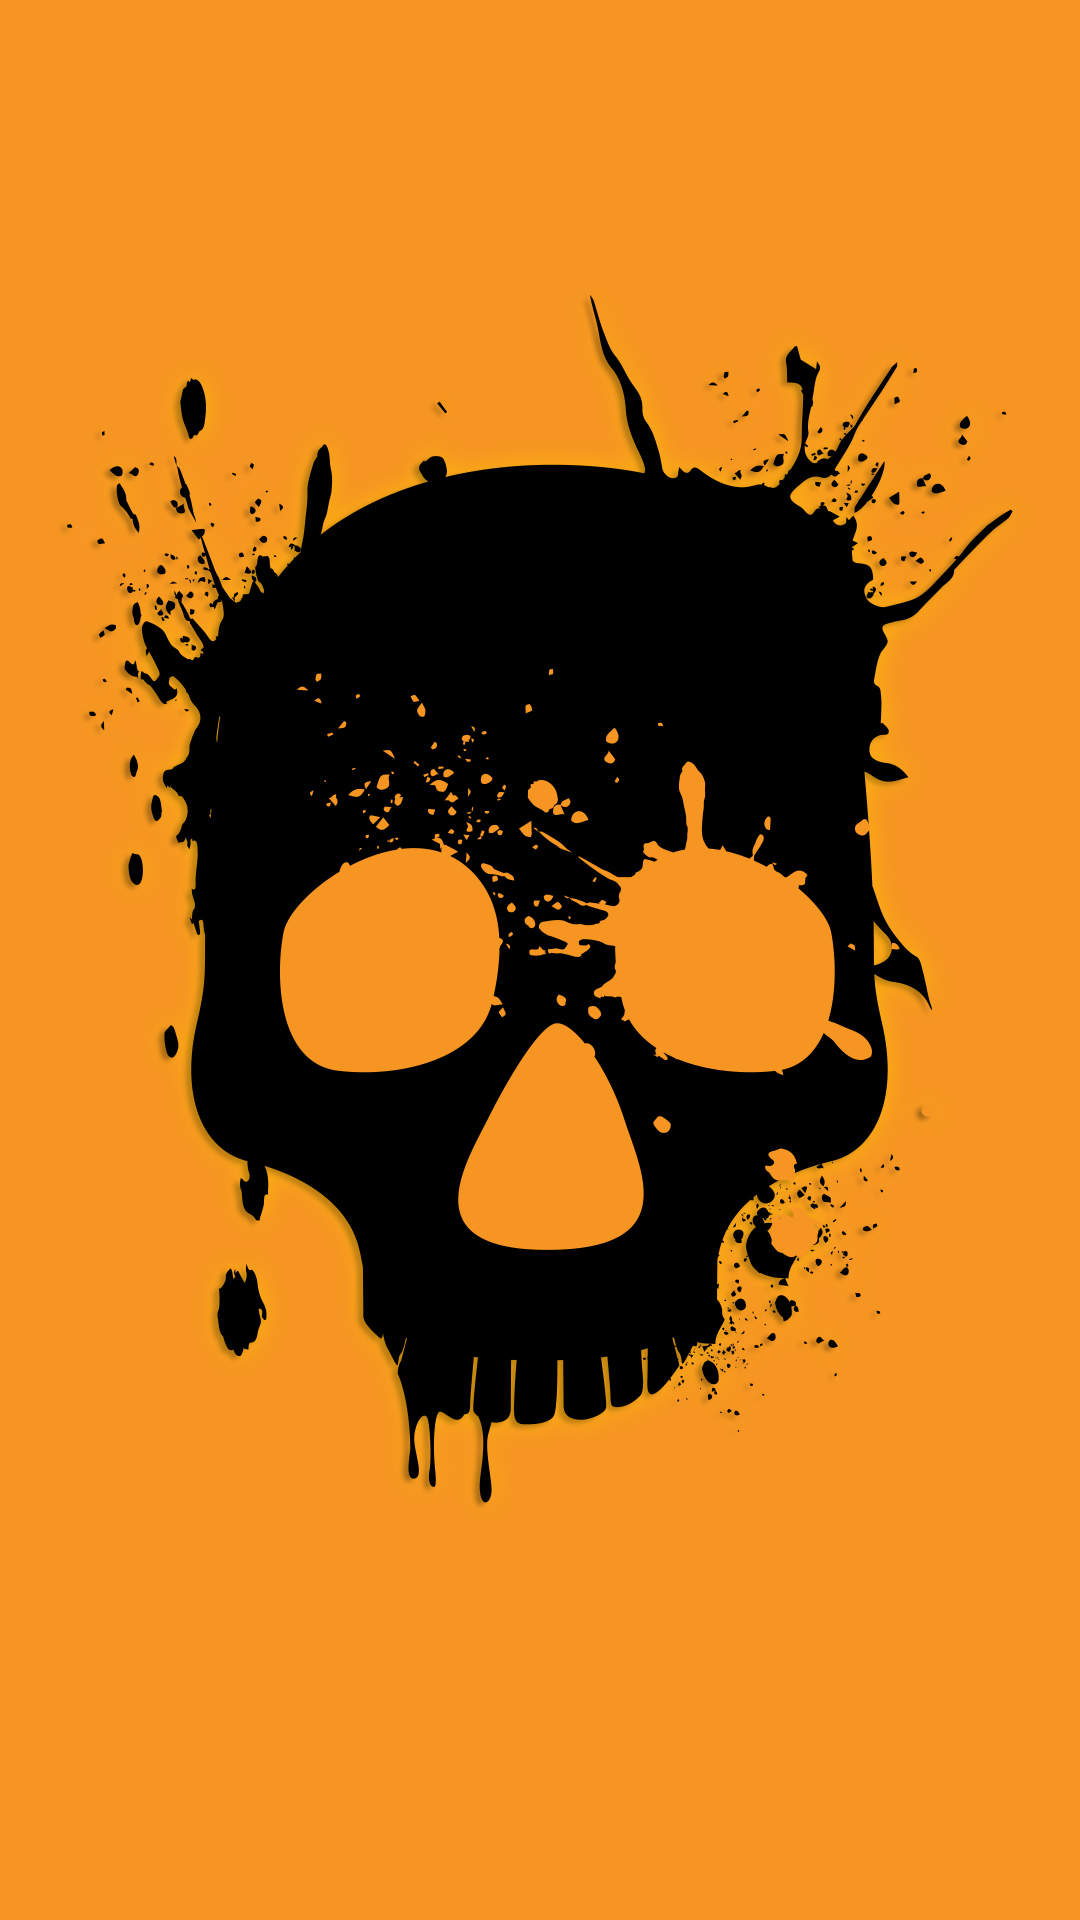 Download  C2 B7 Wasted Skull Phone Wallpaper